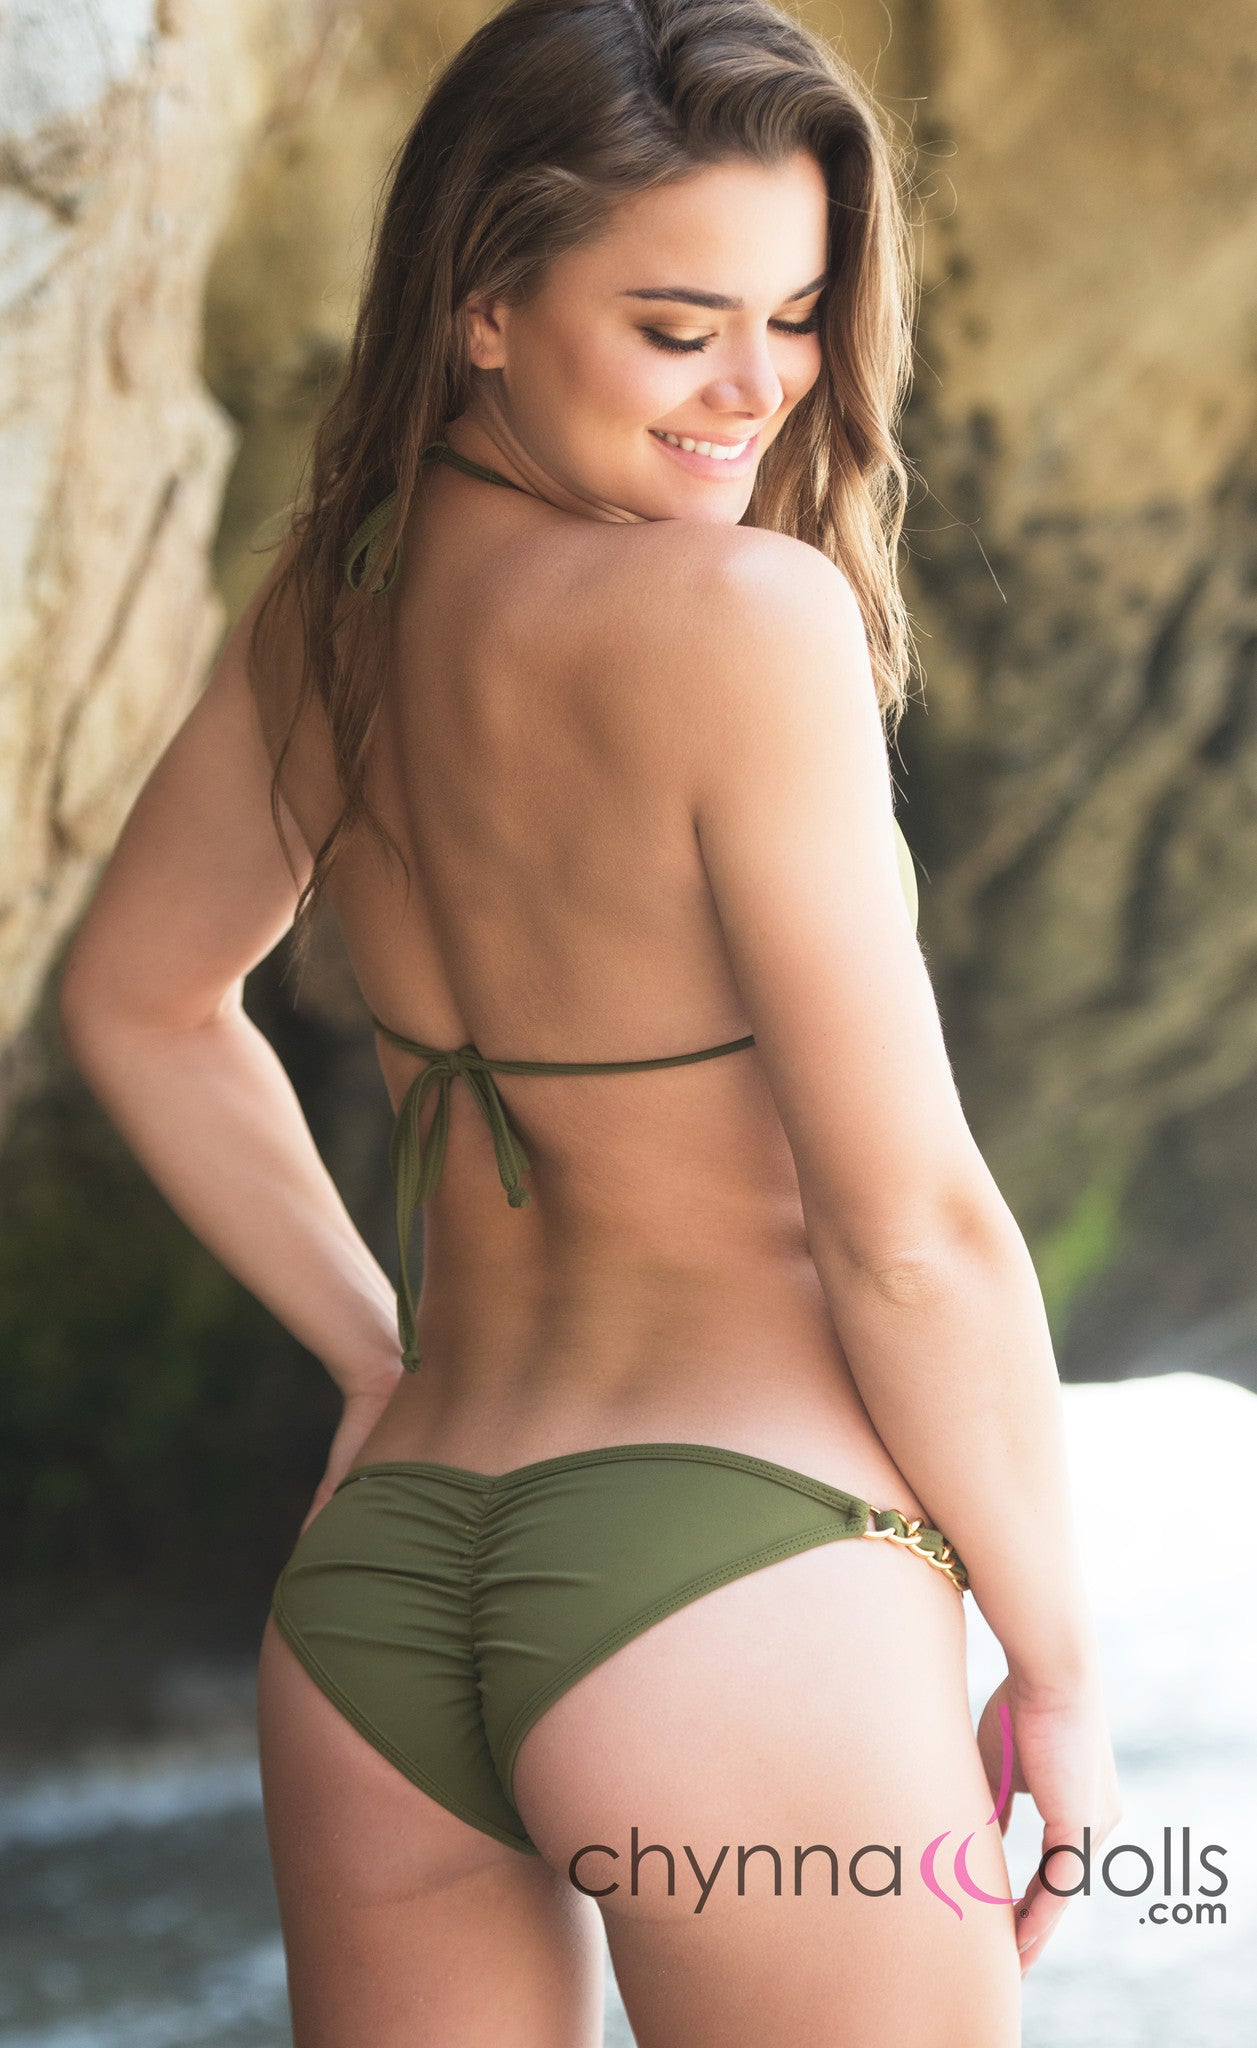 Green and gold bikini